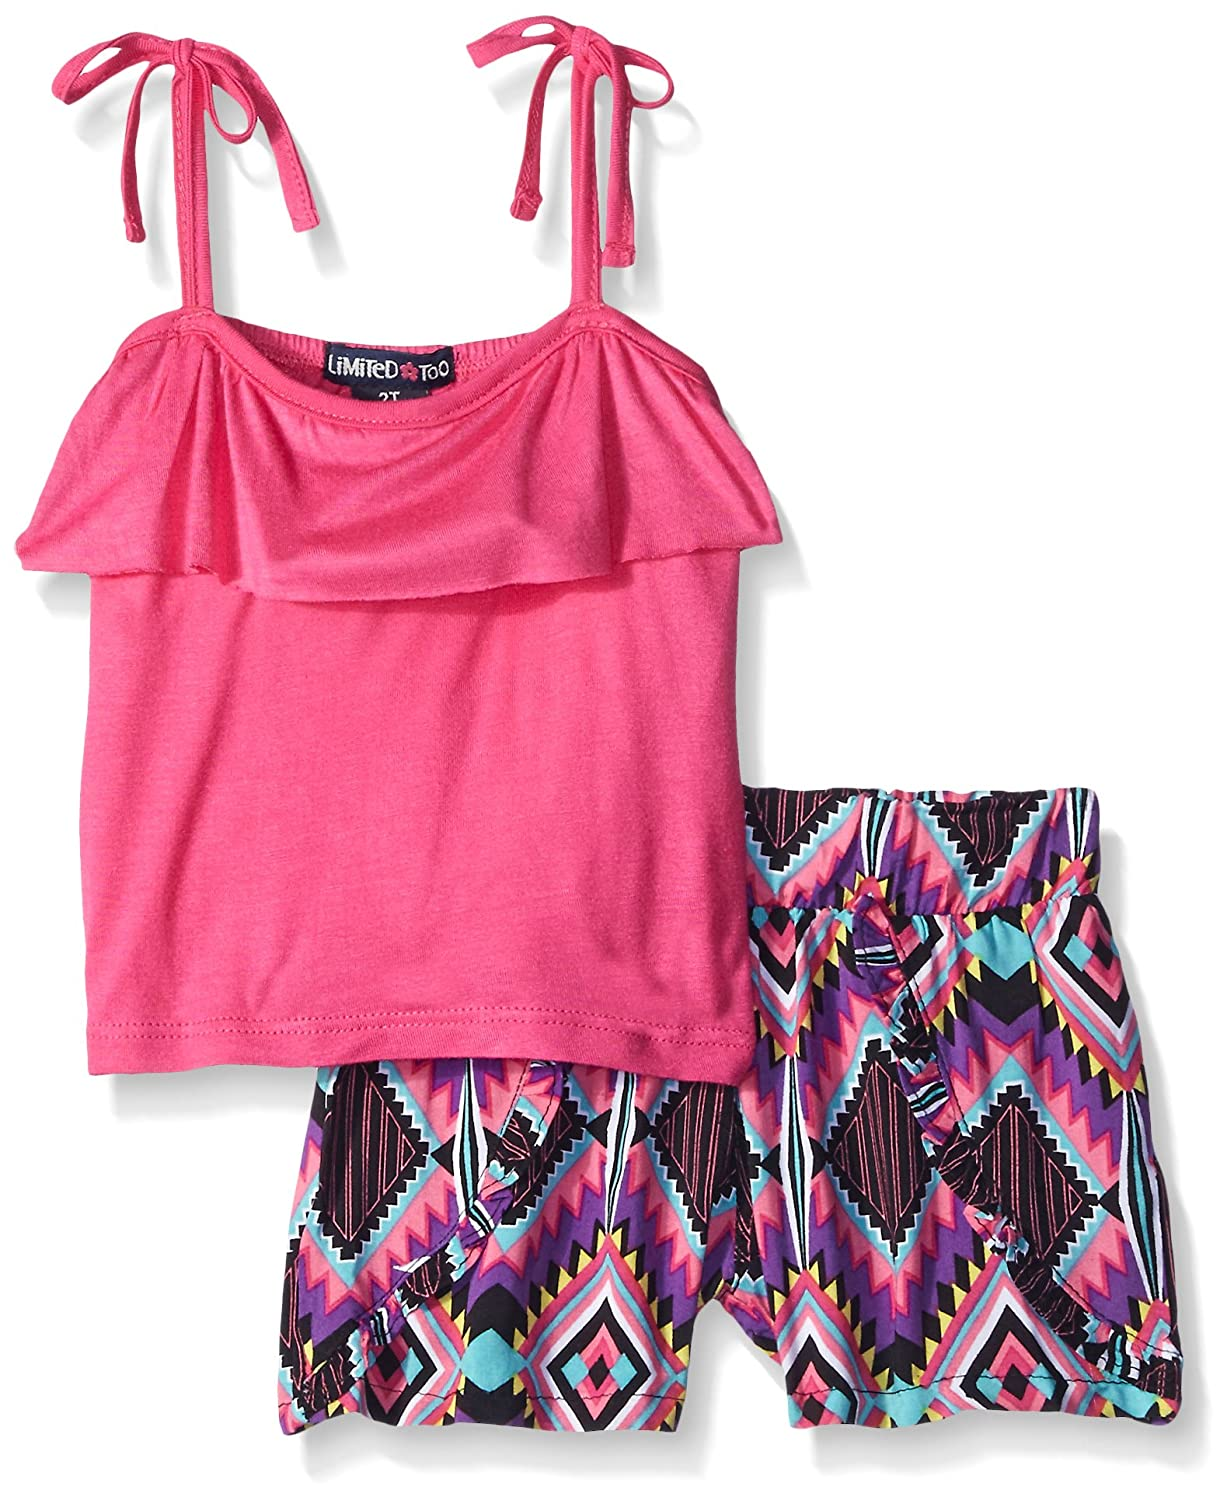 Limited Too girls Ruffle Cami Top and Rayon Print Short PF781